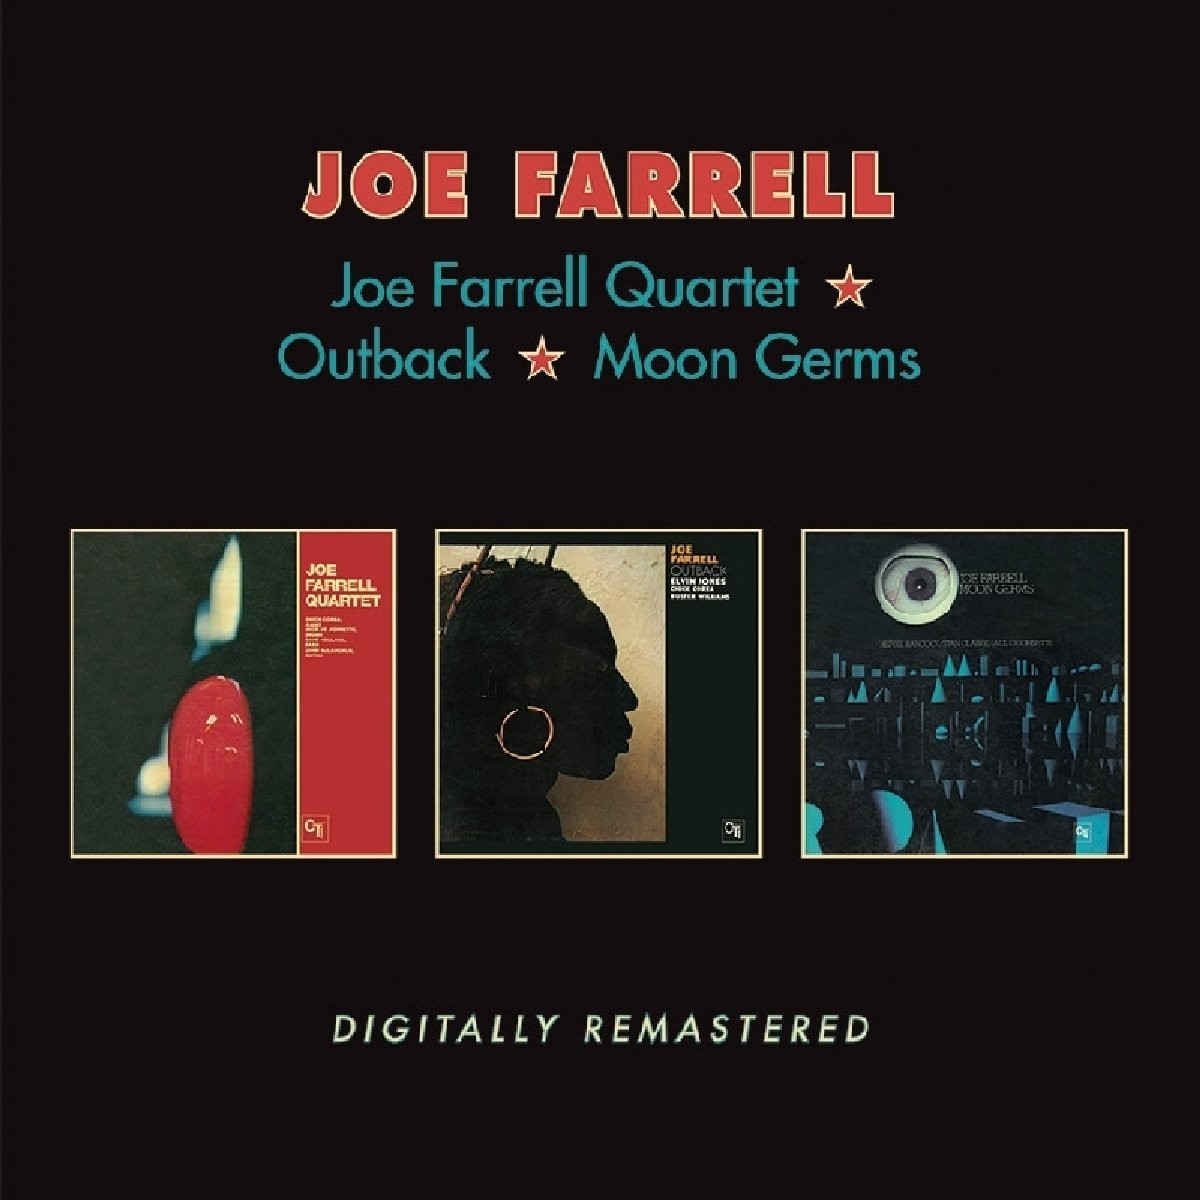 Joe Farrell Quartet/Outback/Moon Germs